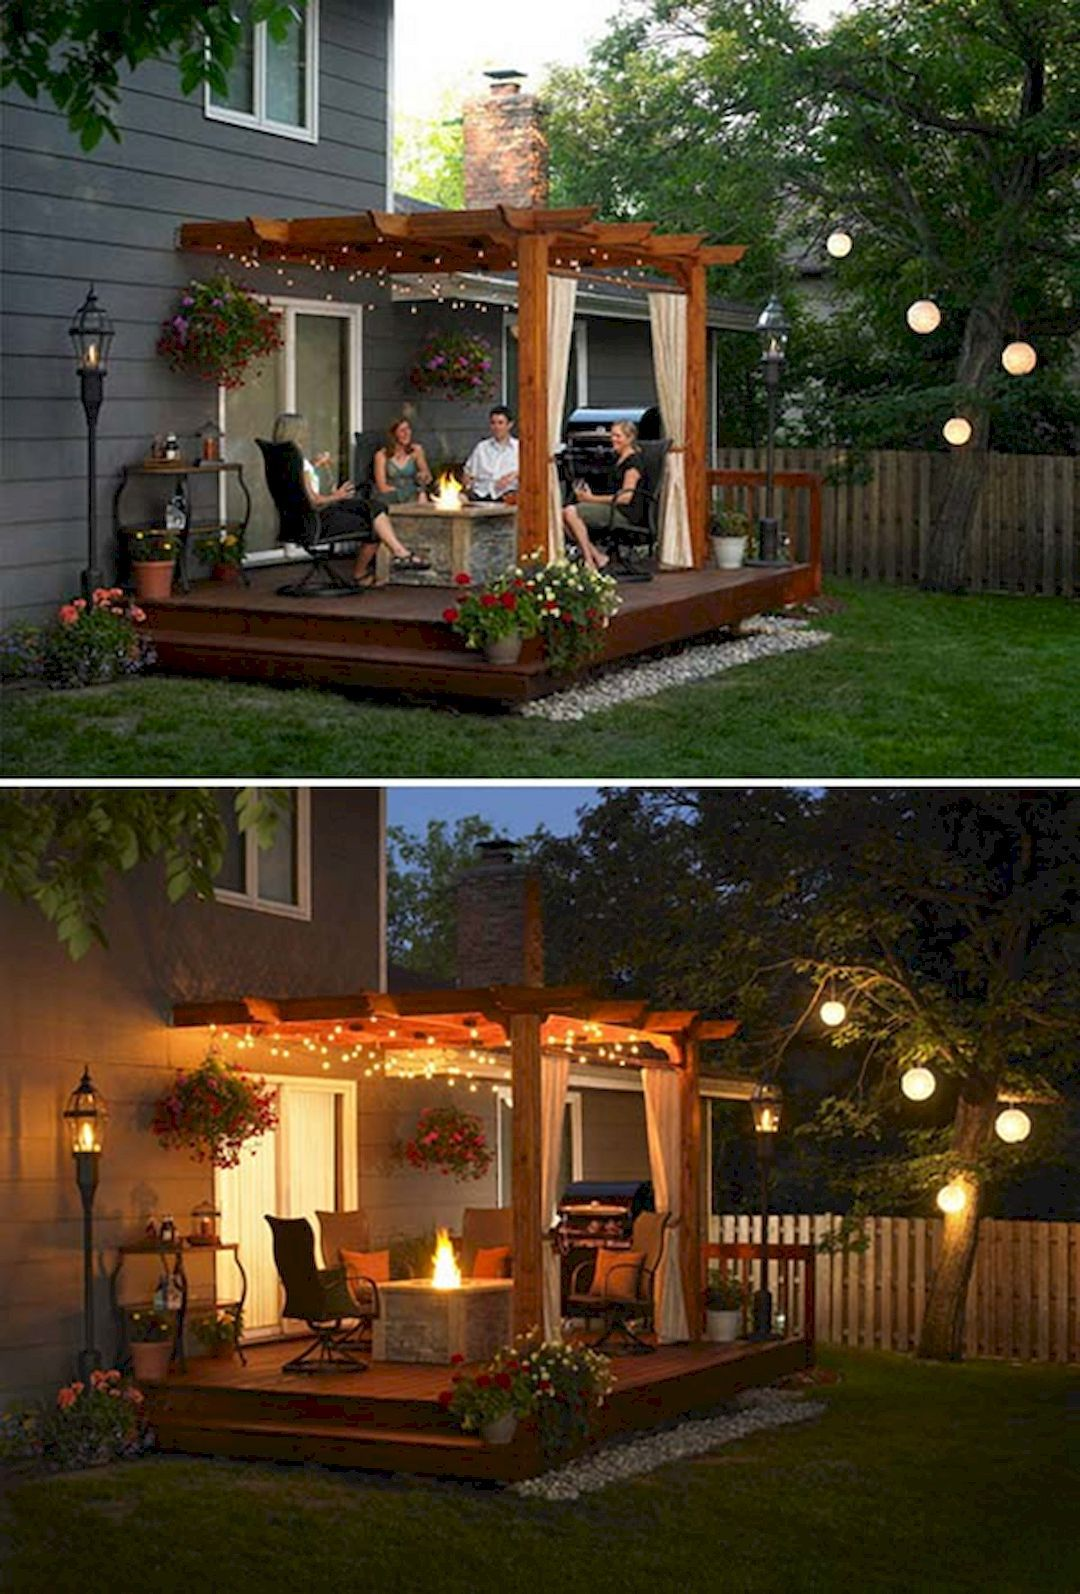 4 Tips To Start Building a Backyard Deck | garden ideas | Pinterest Outside Home Landscape Designs Html on small outside fireplace designs, outside floral designs, outside trellis designs, outside home designs, outside deck designs, outside pond designs, outside waterfalls designs, outside paint designs, outside entrance designs, outside kitchen designs, outside flower bed designs, outside interior designs, outside patio designs, outside building designs, outside walkways designs, outside pool designs, outside porch designs, outside stone wall designs, outside bbq pit designs, outside border designs,